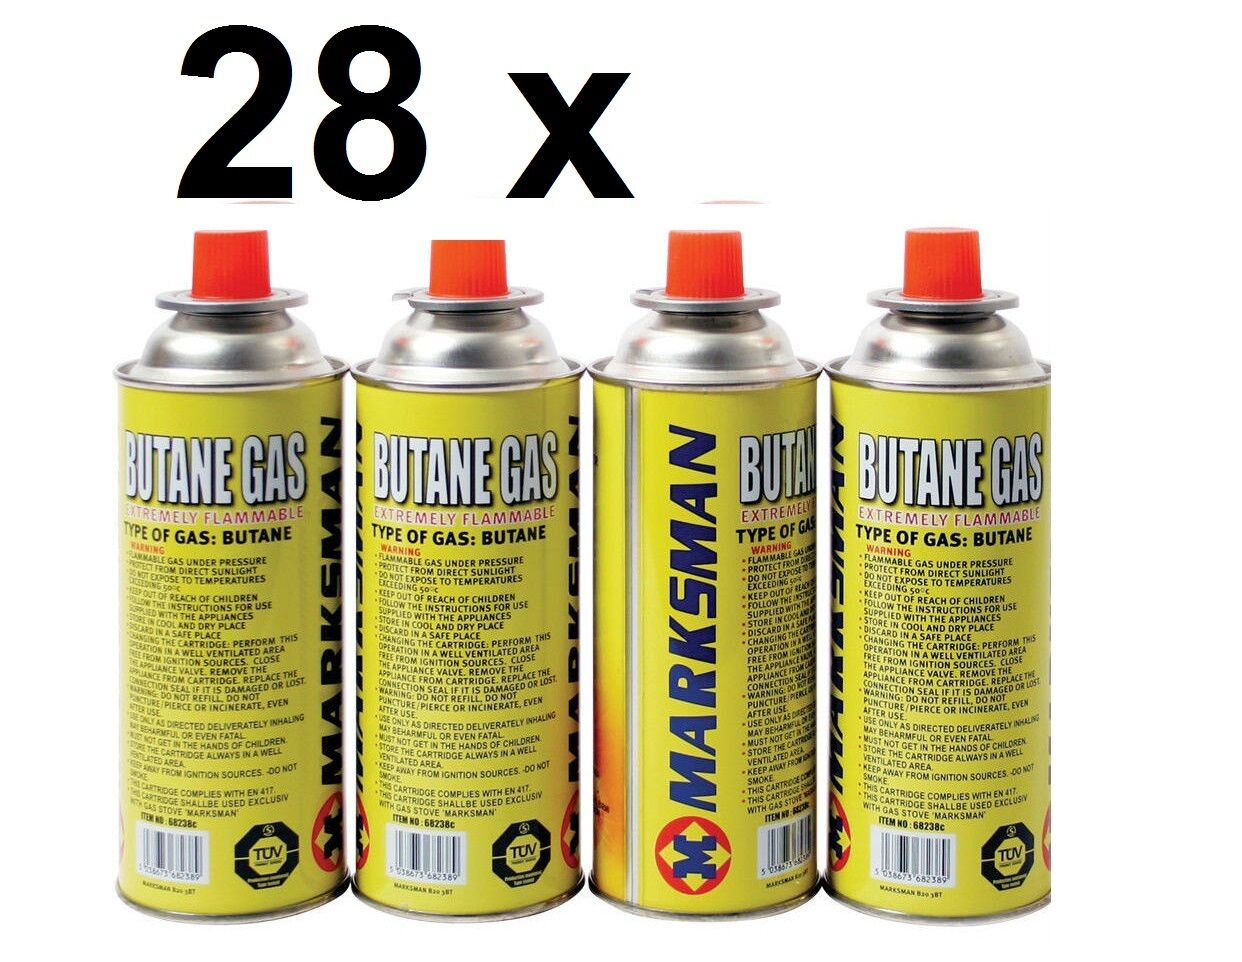 28x BUTANE CANISTER GAS BOTTLES FOR PORTABLE CAMPING COOKING HEATER STOVE COOKER